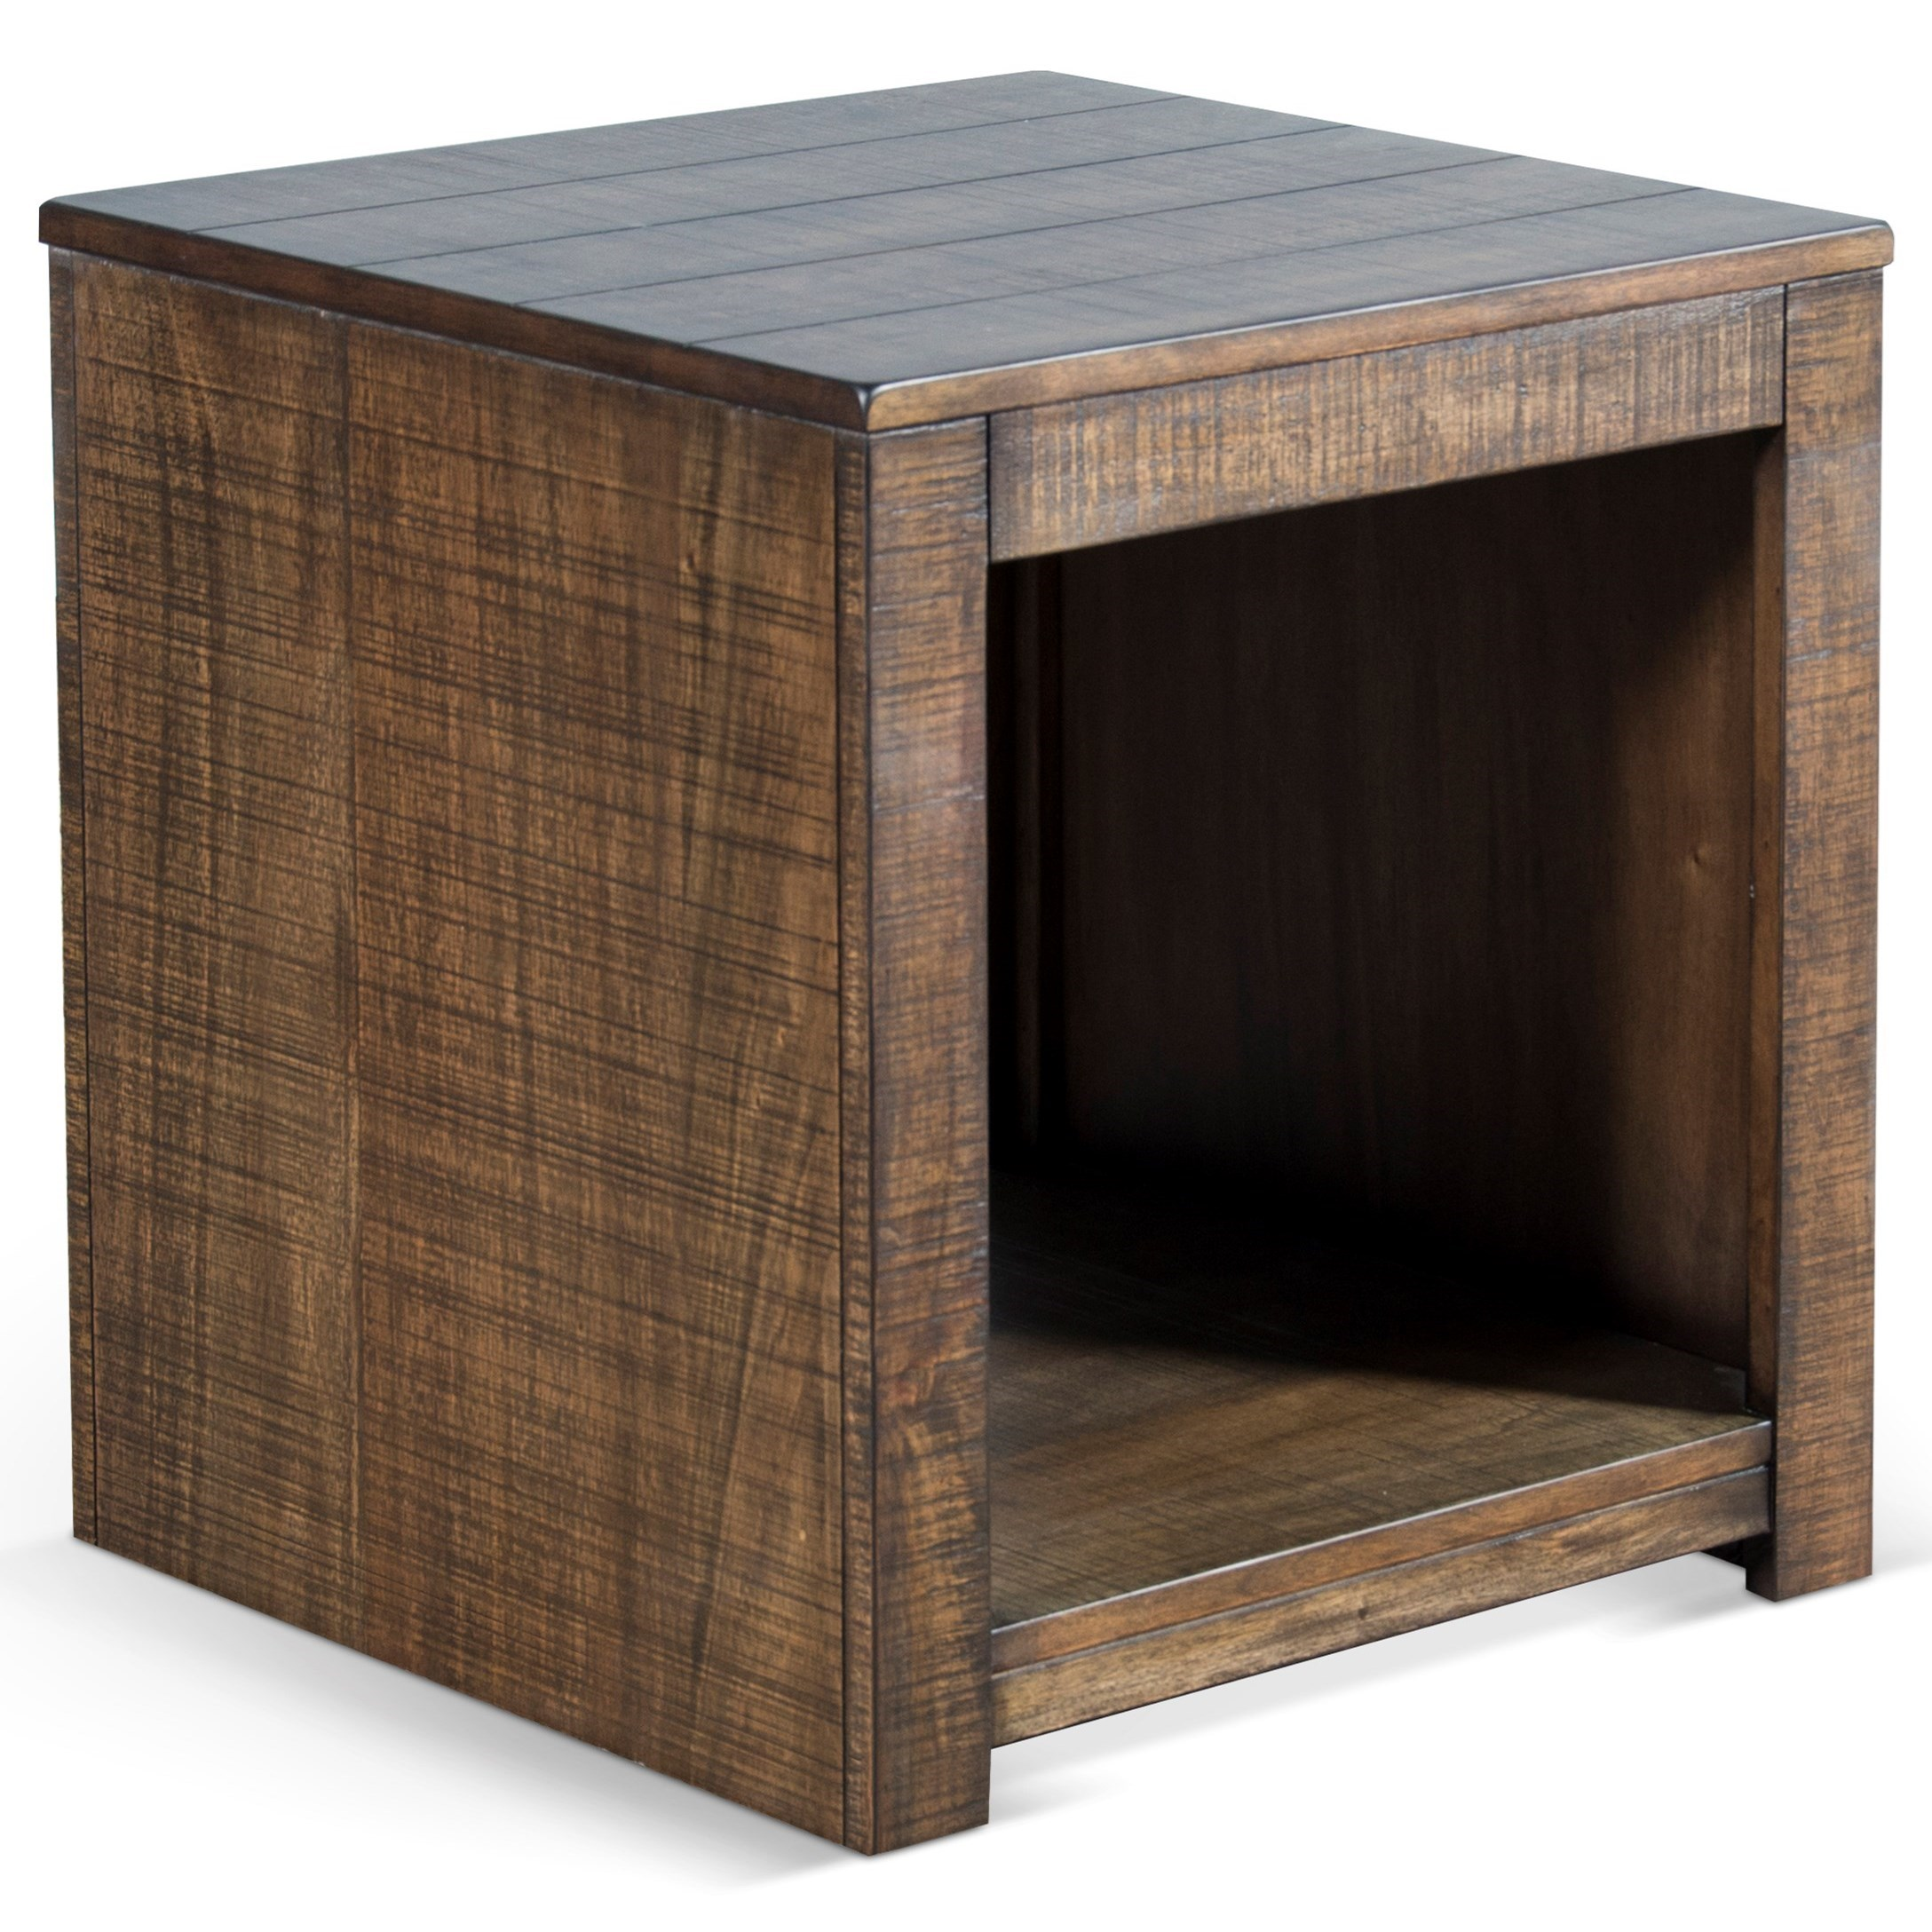 3108 Solid Wood Mahogany End Table by Sunny Designs at Home Furnishings Direct